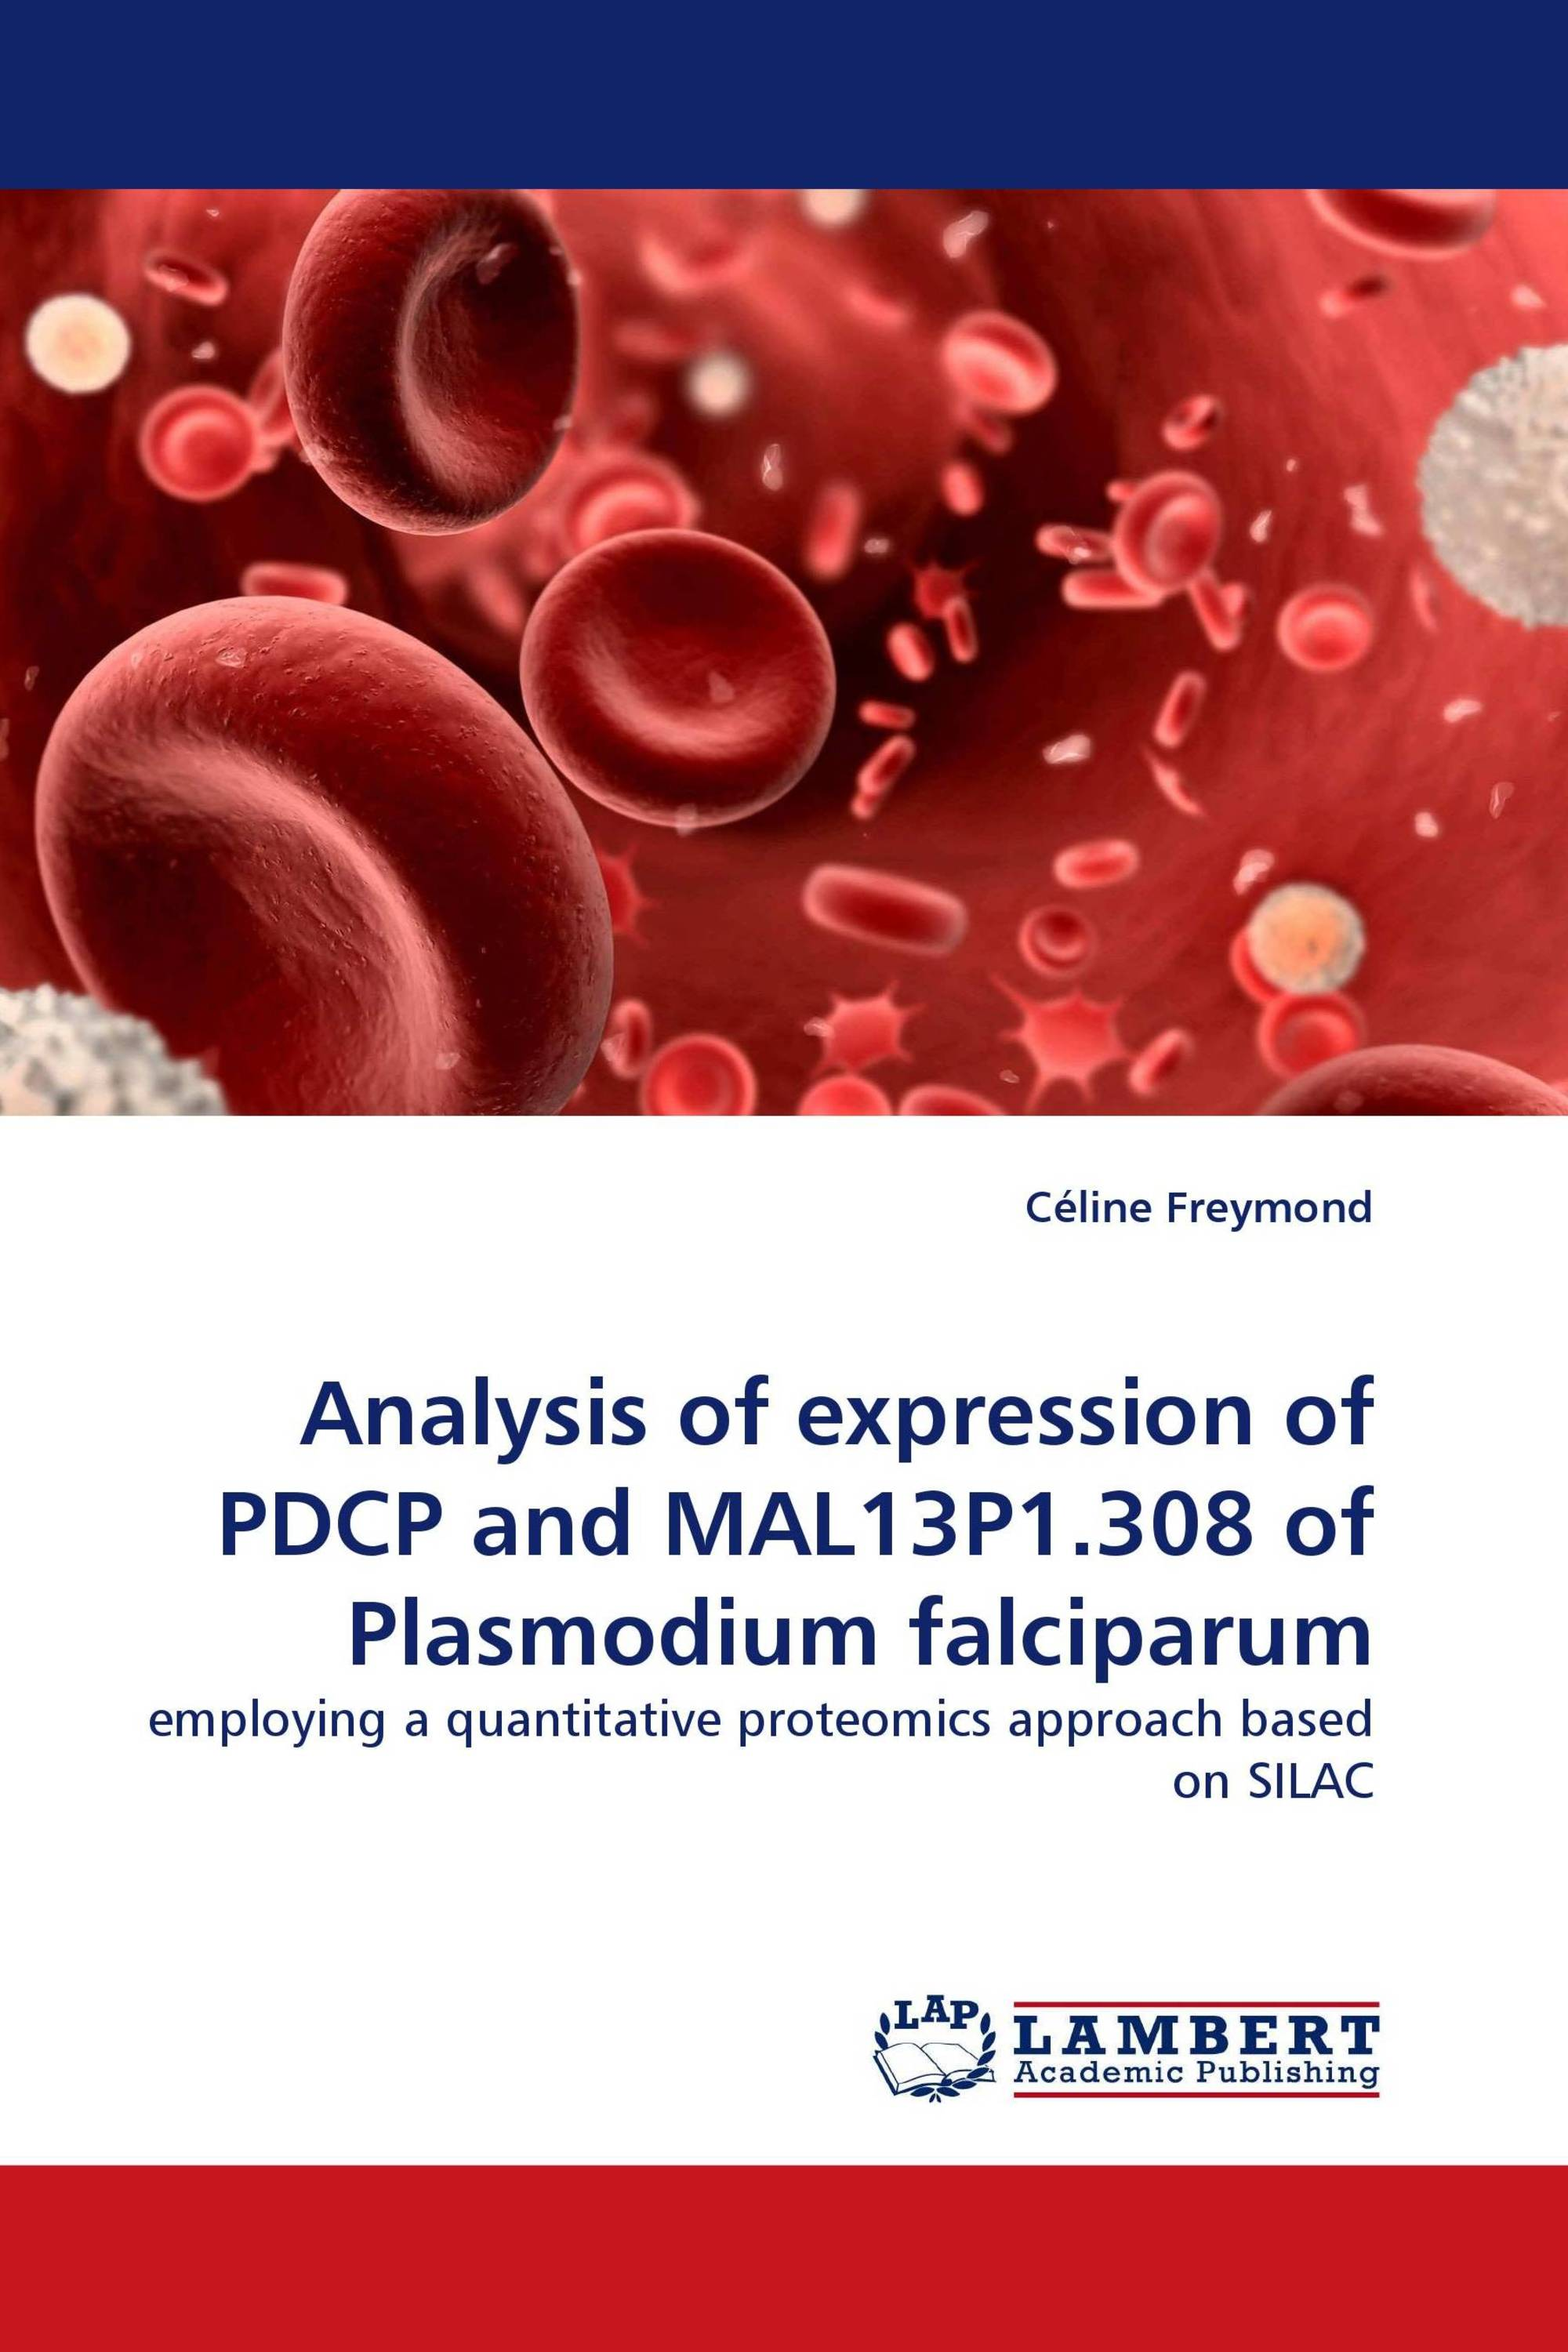 Analysis of expression of PDCP and MAL13P1.308 of Plasmodium falciparum